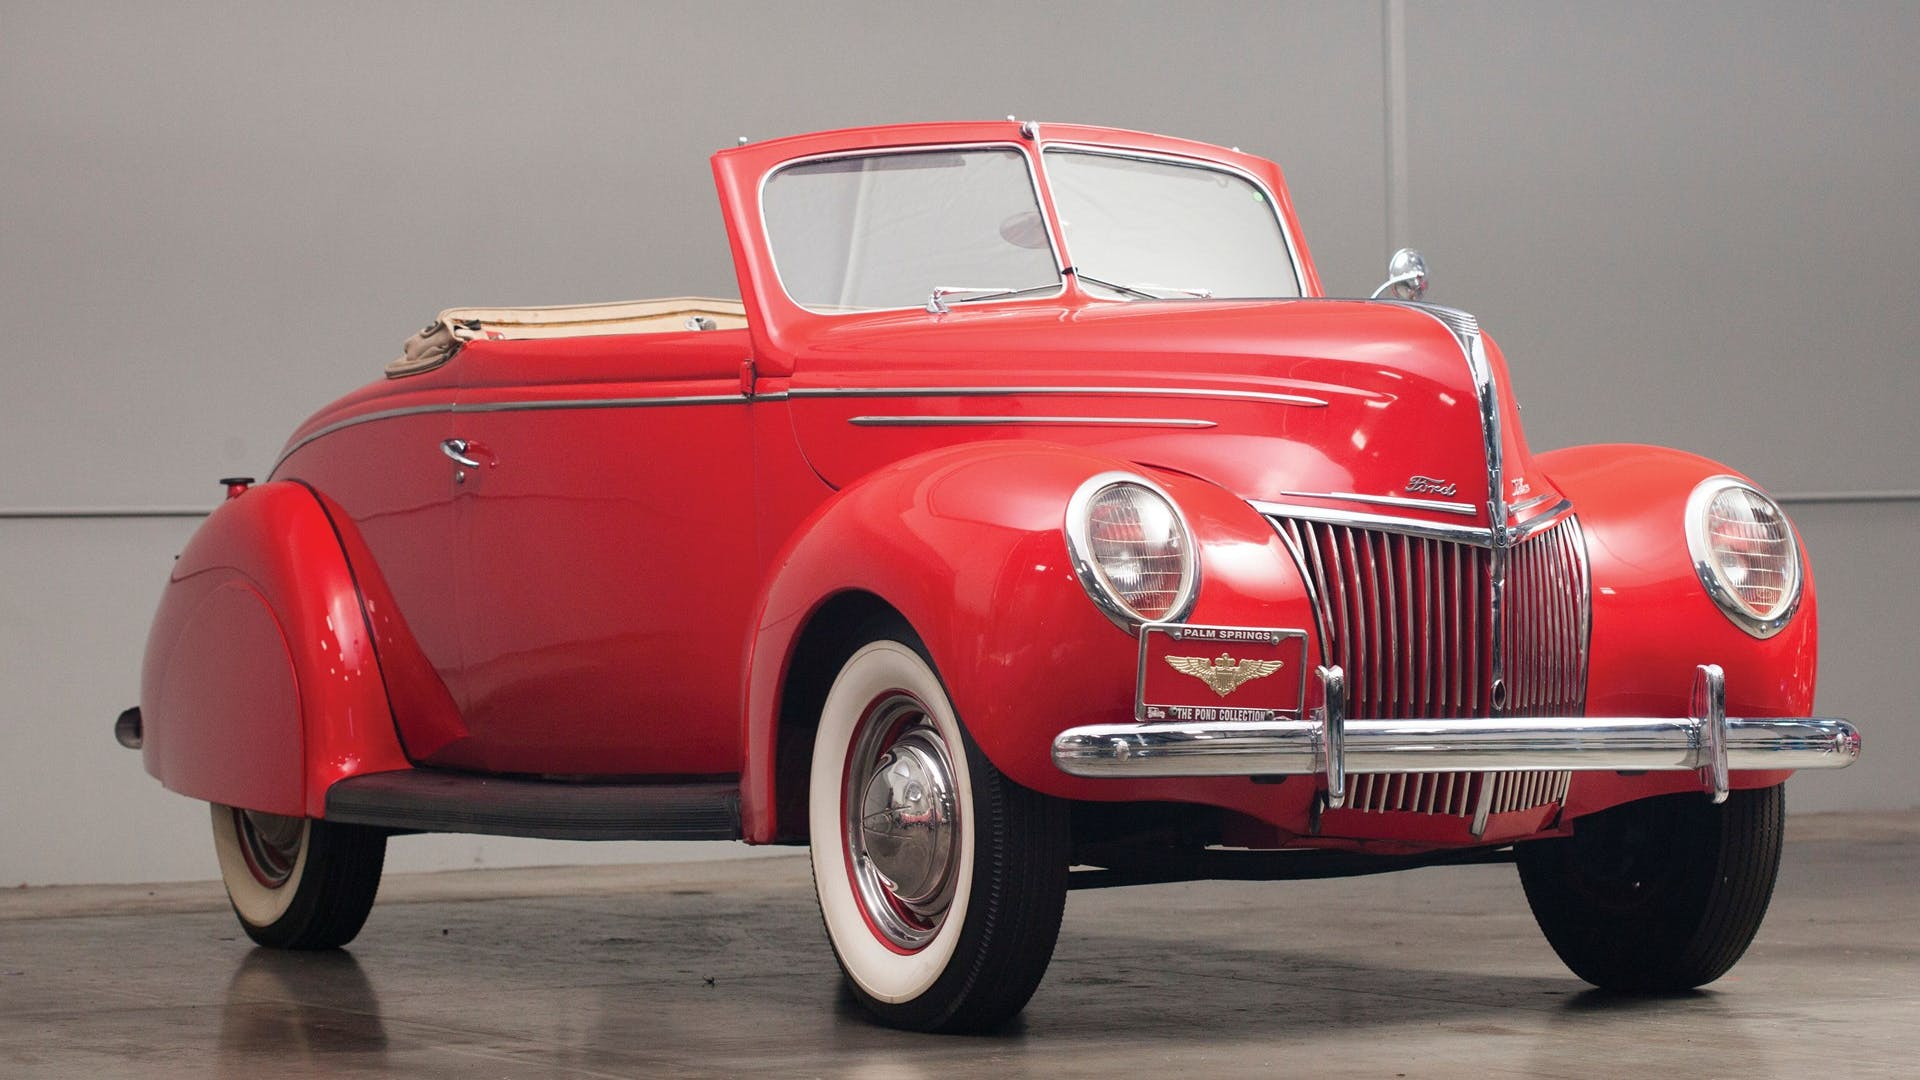 1939 Ford V-8 Deluxe